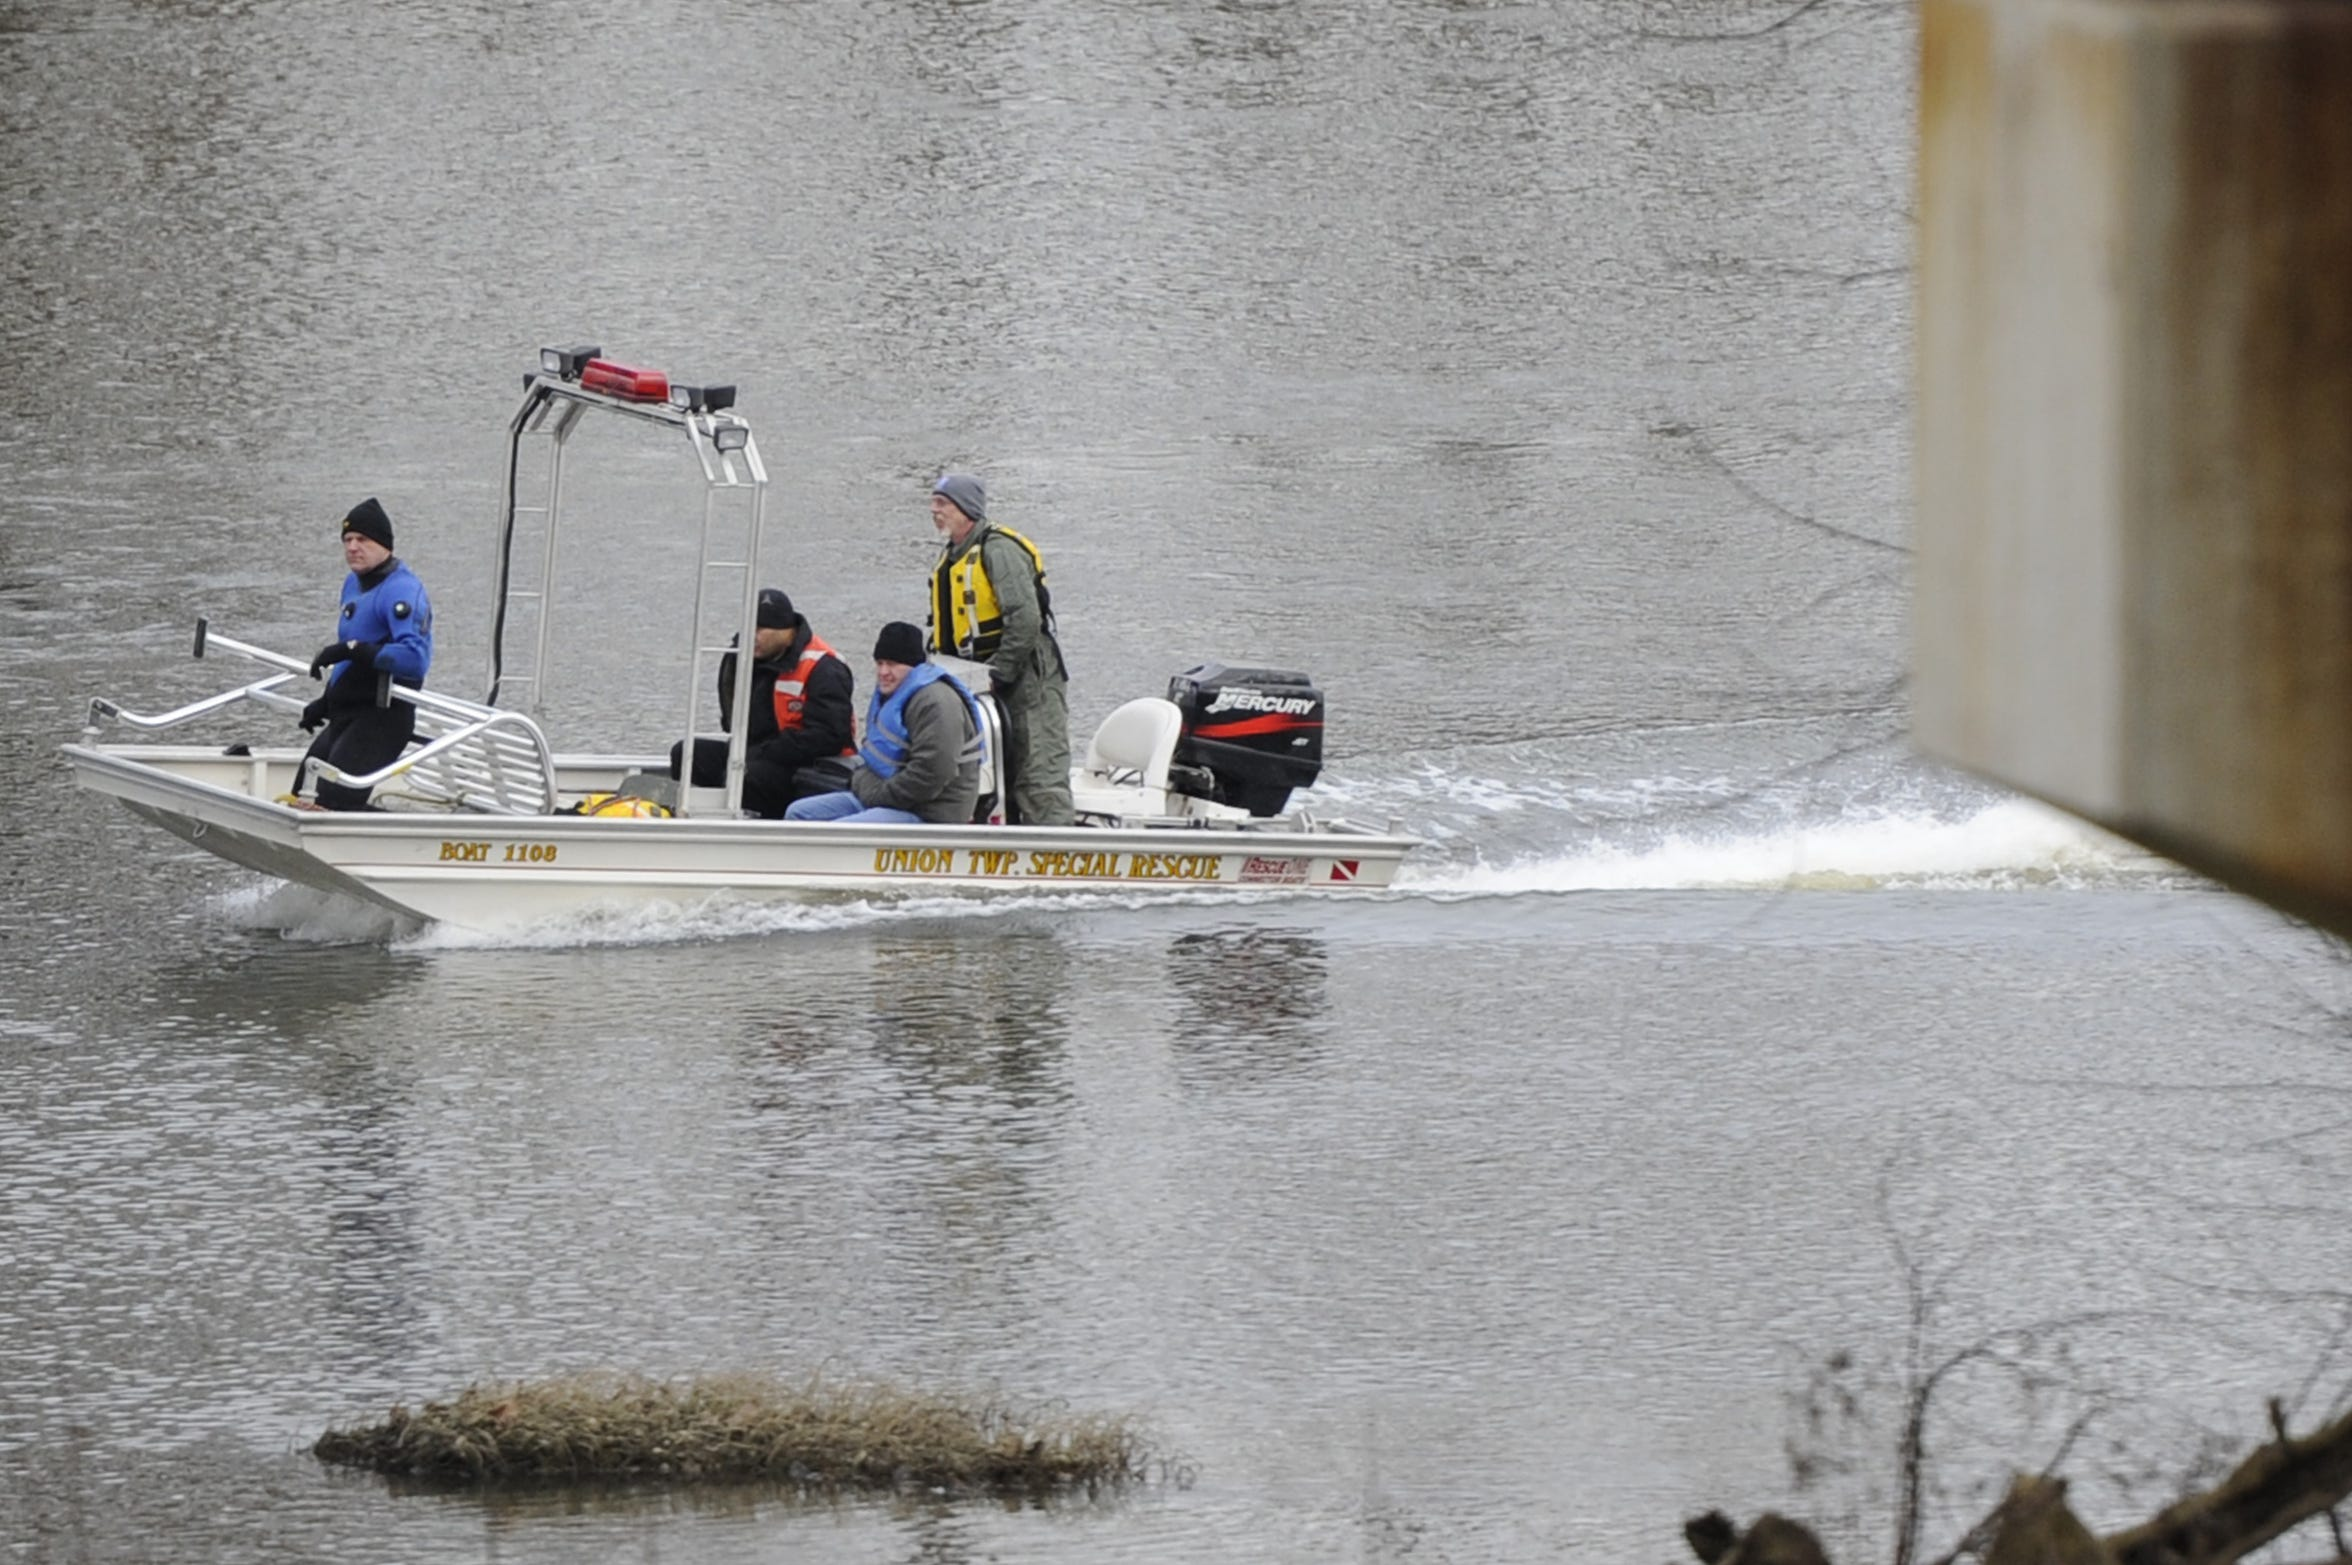 Investigators return to the boat launch after a body, later identified as Shasta Himelrick, was found and removed from the Scioto River on Jan. 2, 2015.